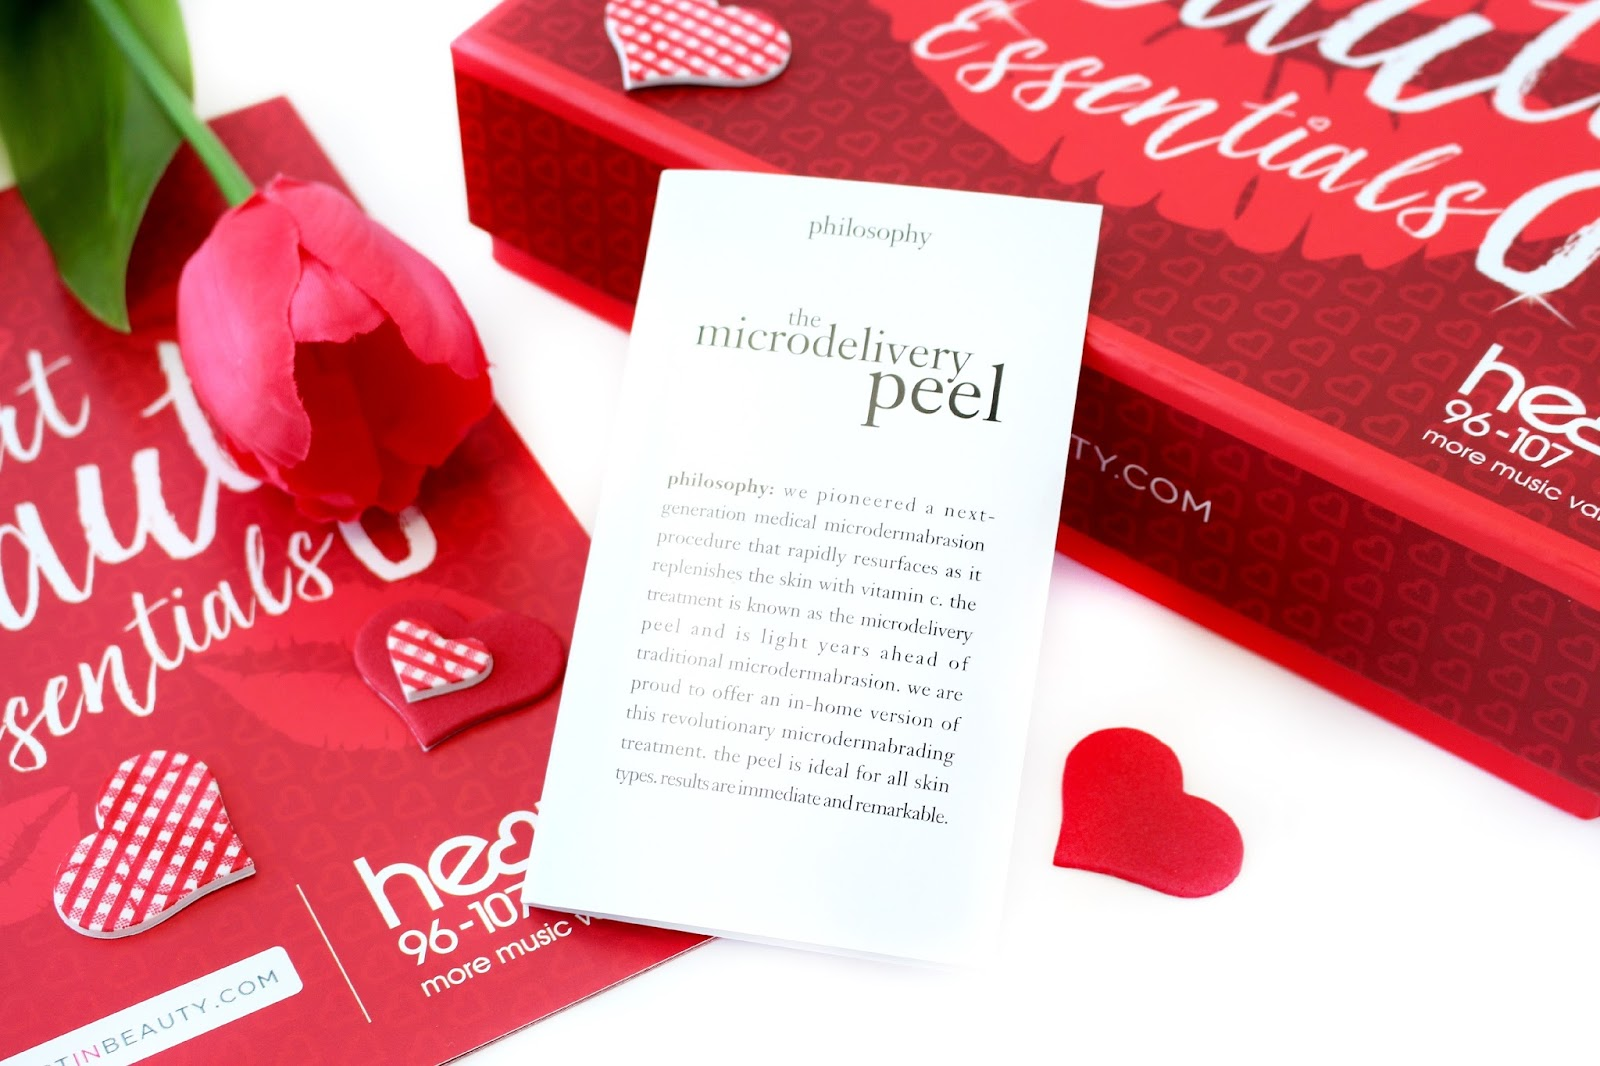 The Heart Beauty Essentials Box